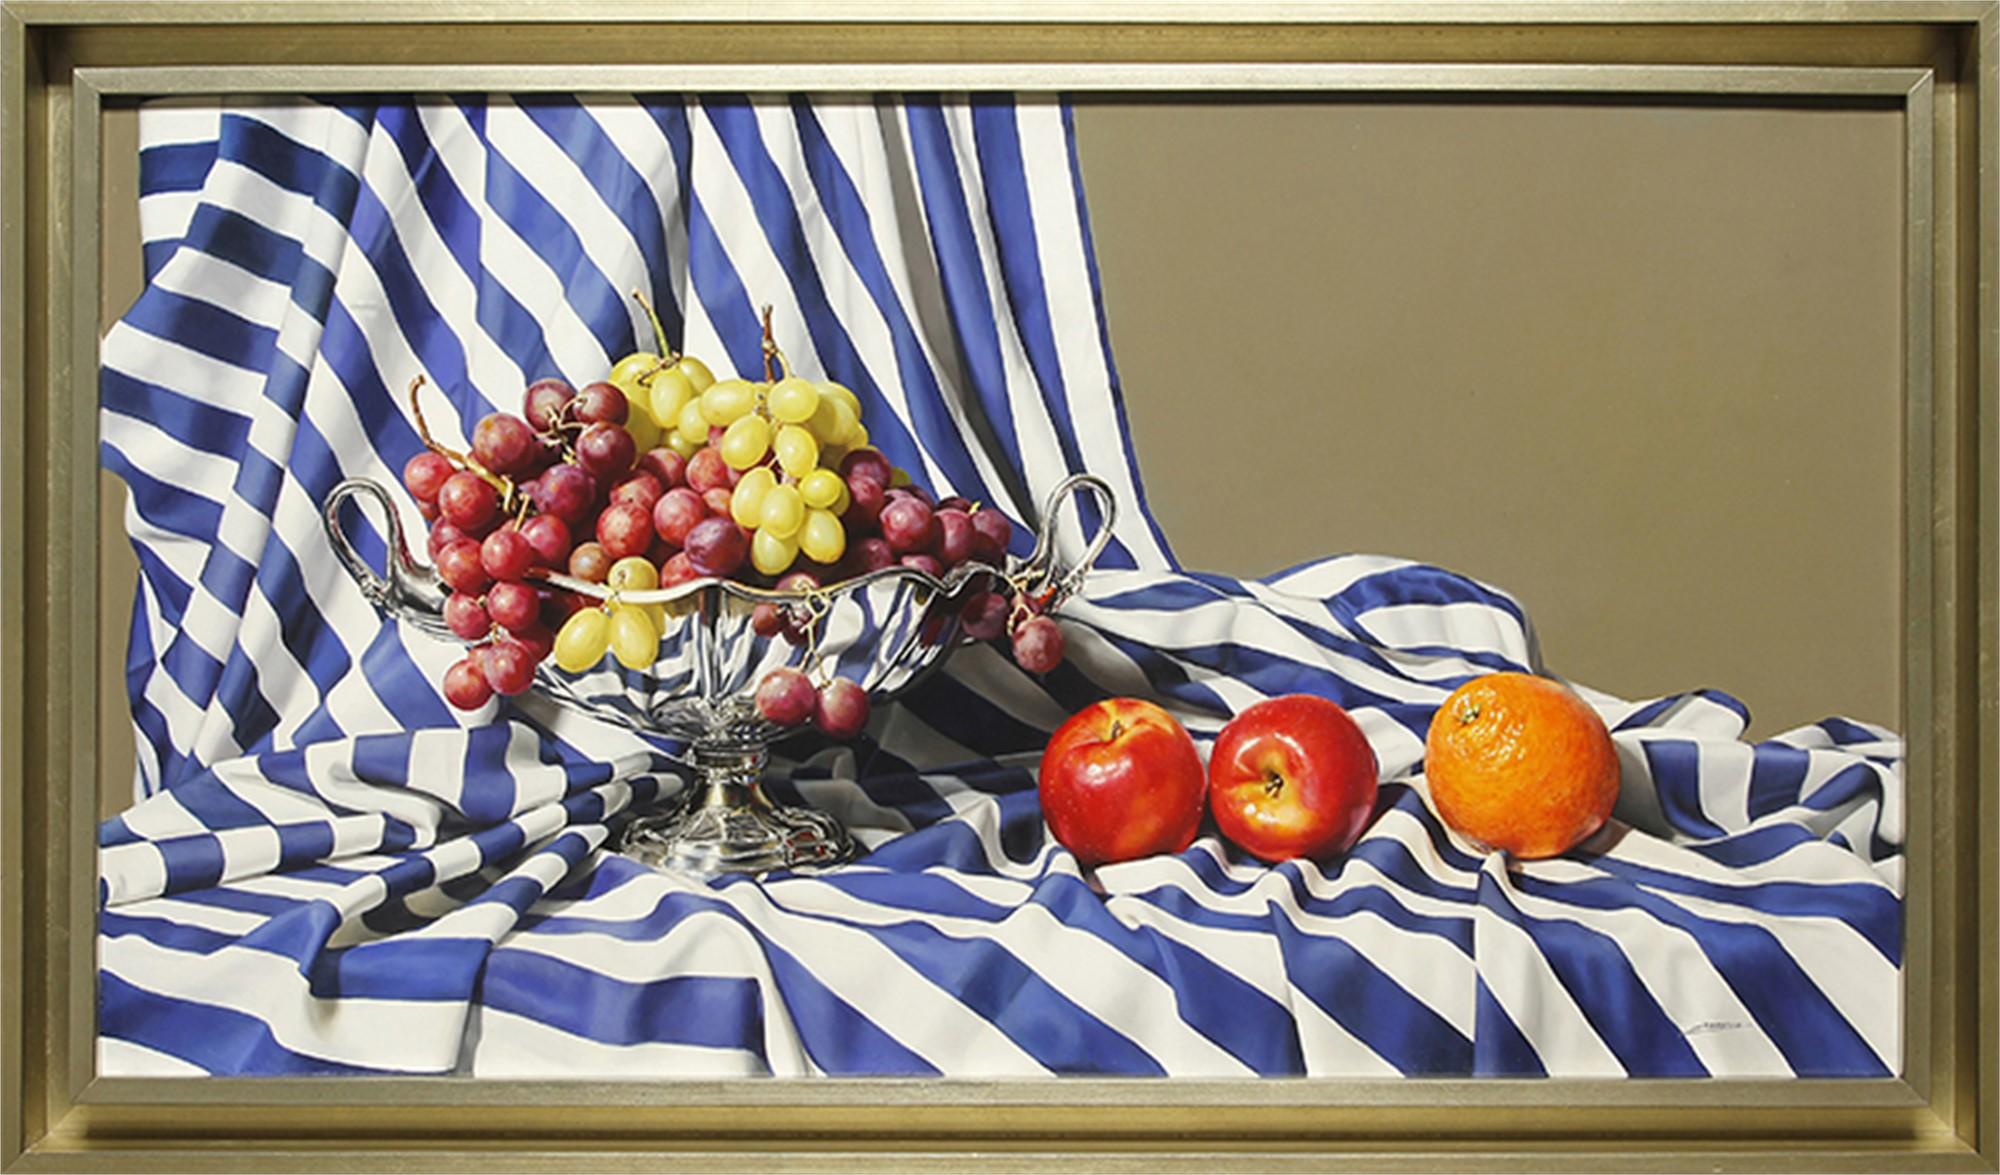 Silver and Fruit by Jesus Navarro